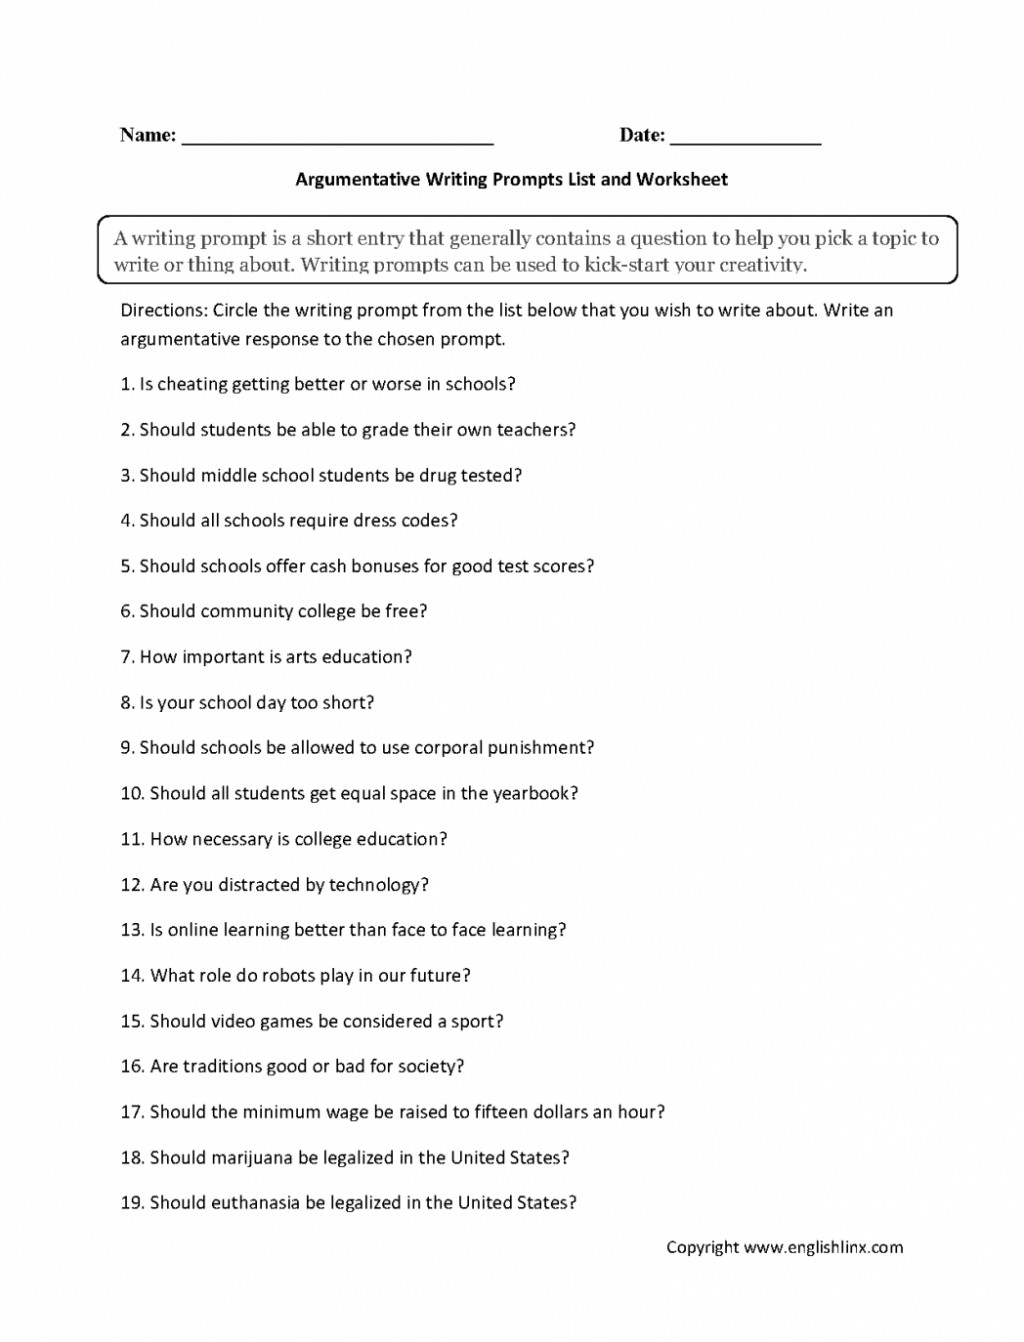 011 Argument Essay Prompts Goal Blockety Co Argumentative Topics Writing List Work For High School Subjects About Animals On Racism College Sports Middle 1048x1374 Excellent Questions Othello Paper Large